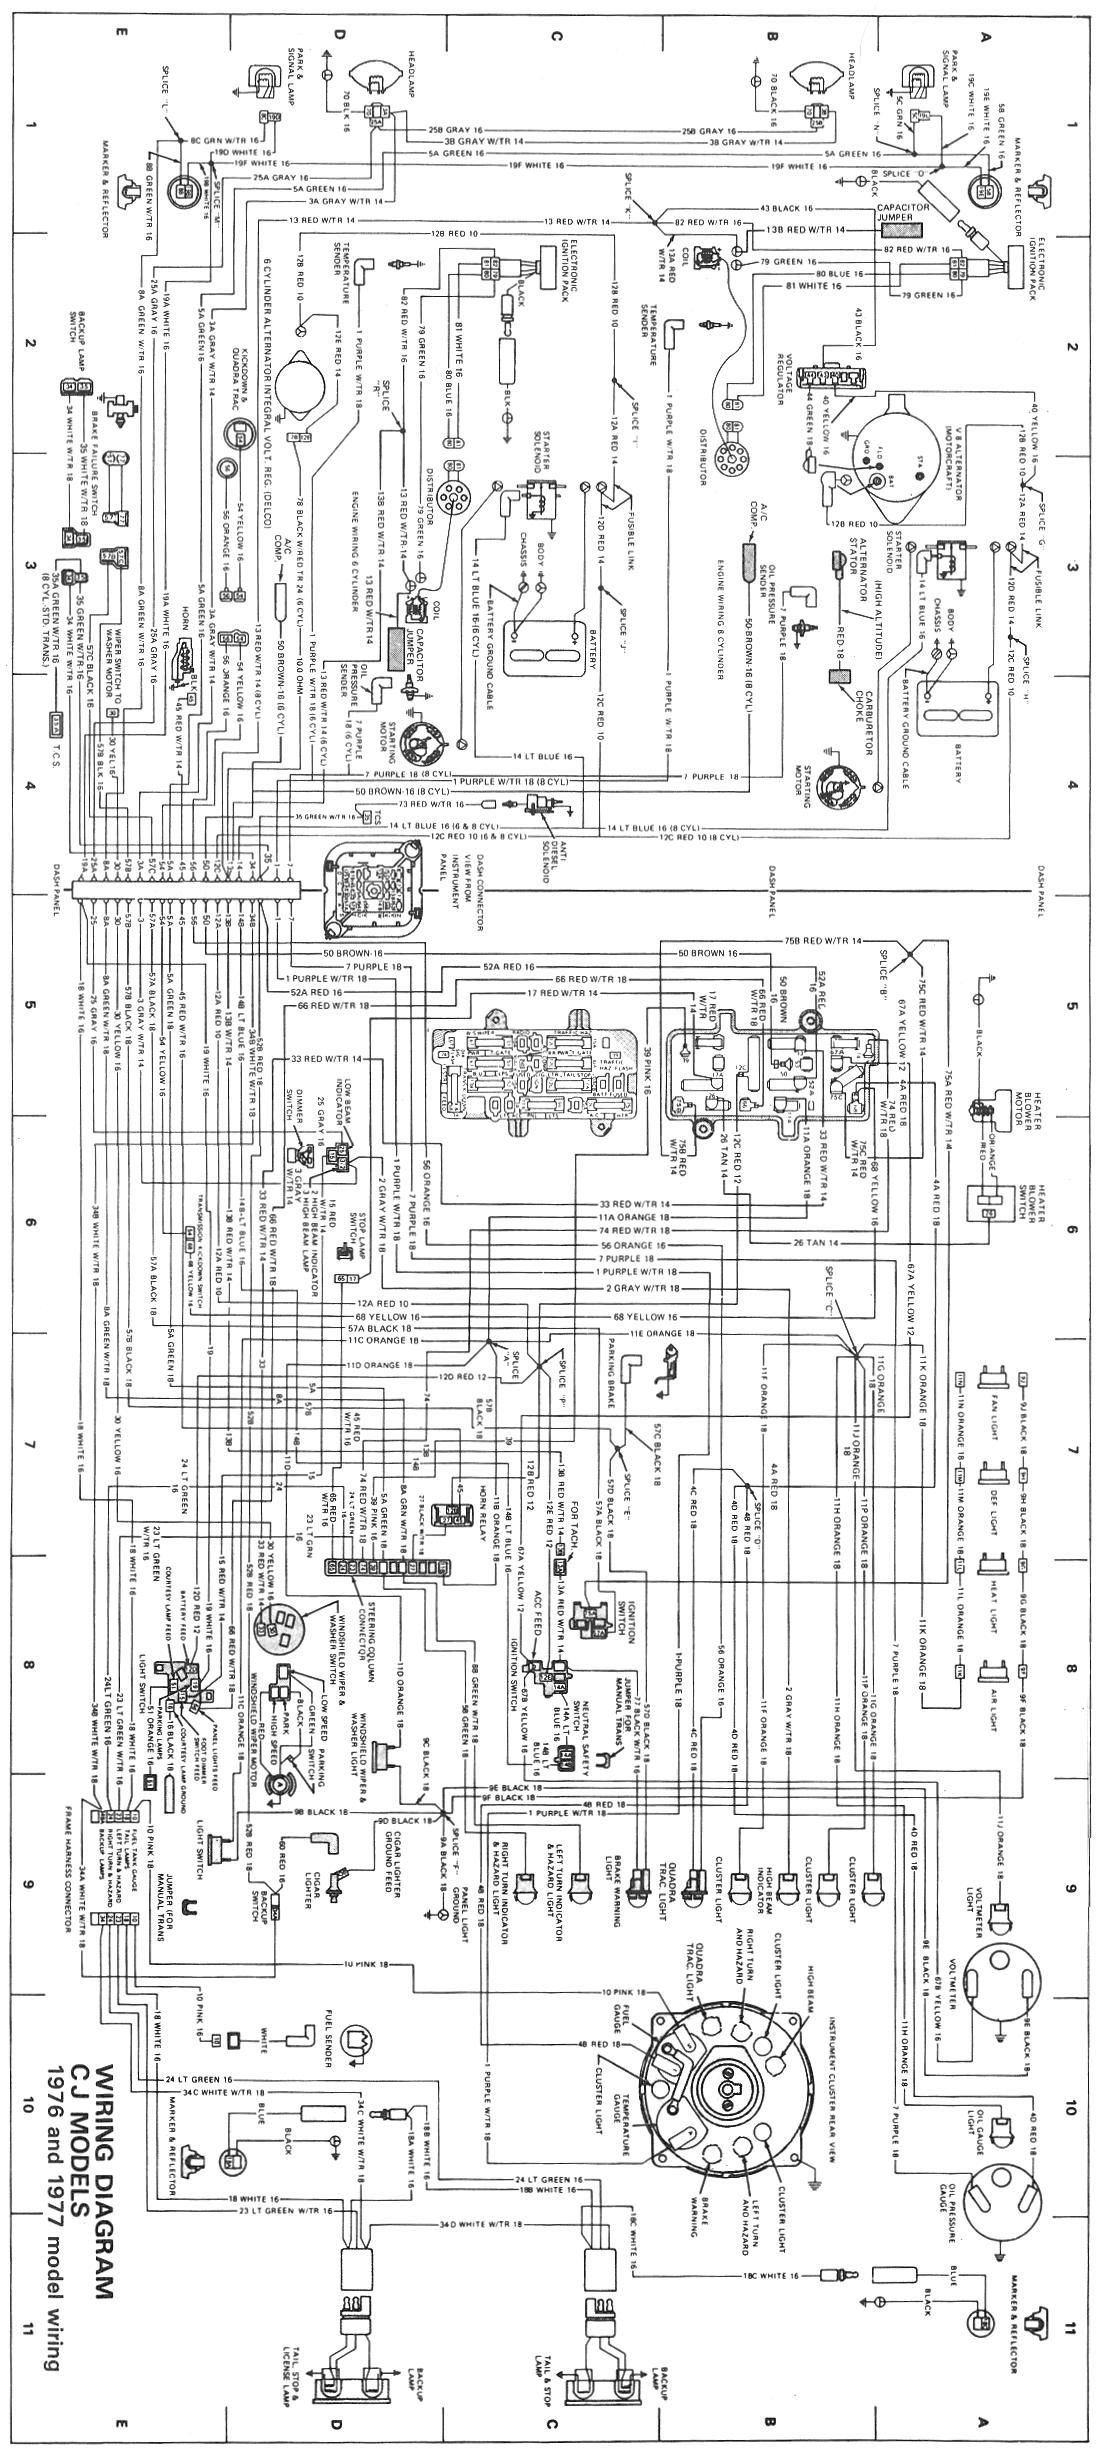 Jeep Wiring Diagrams - 1976 and 1977 CJ | Jeep cj7, Jeep, Jeep cj5Pinterest